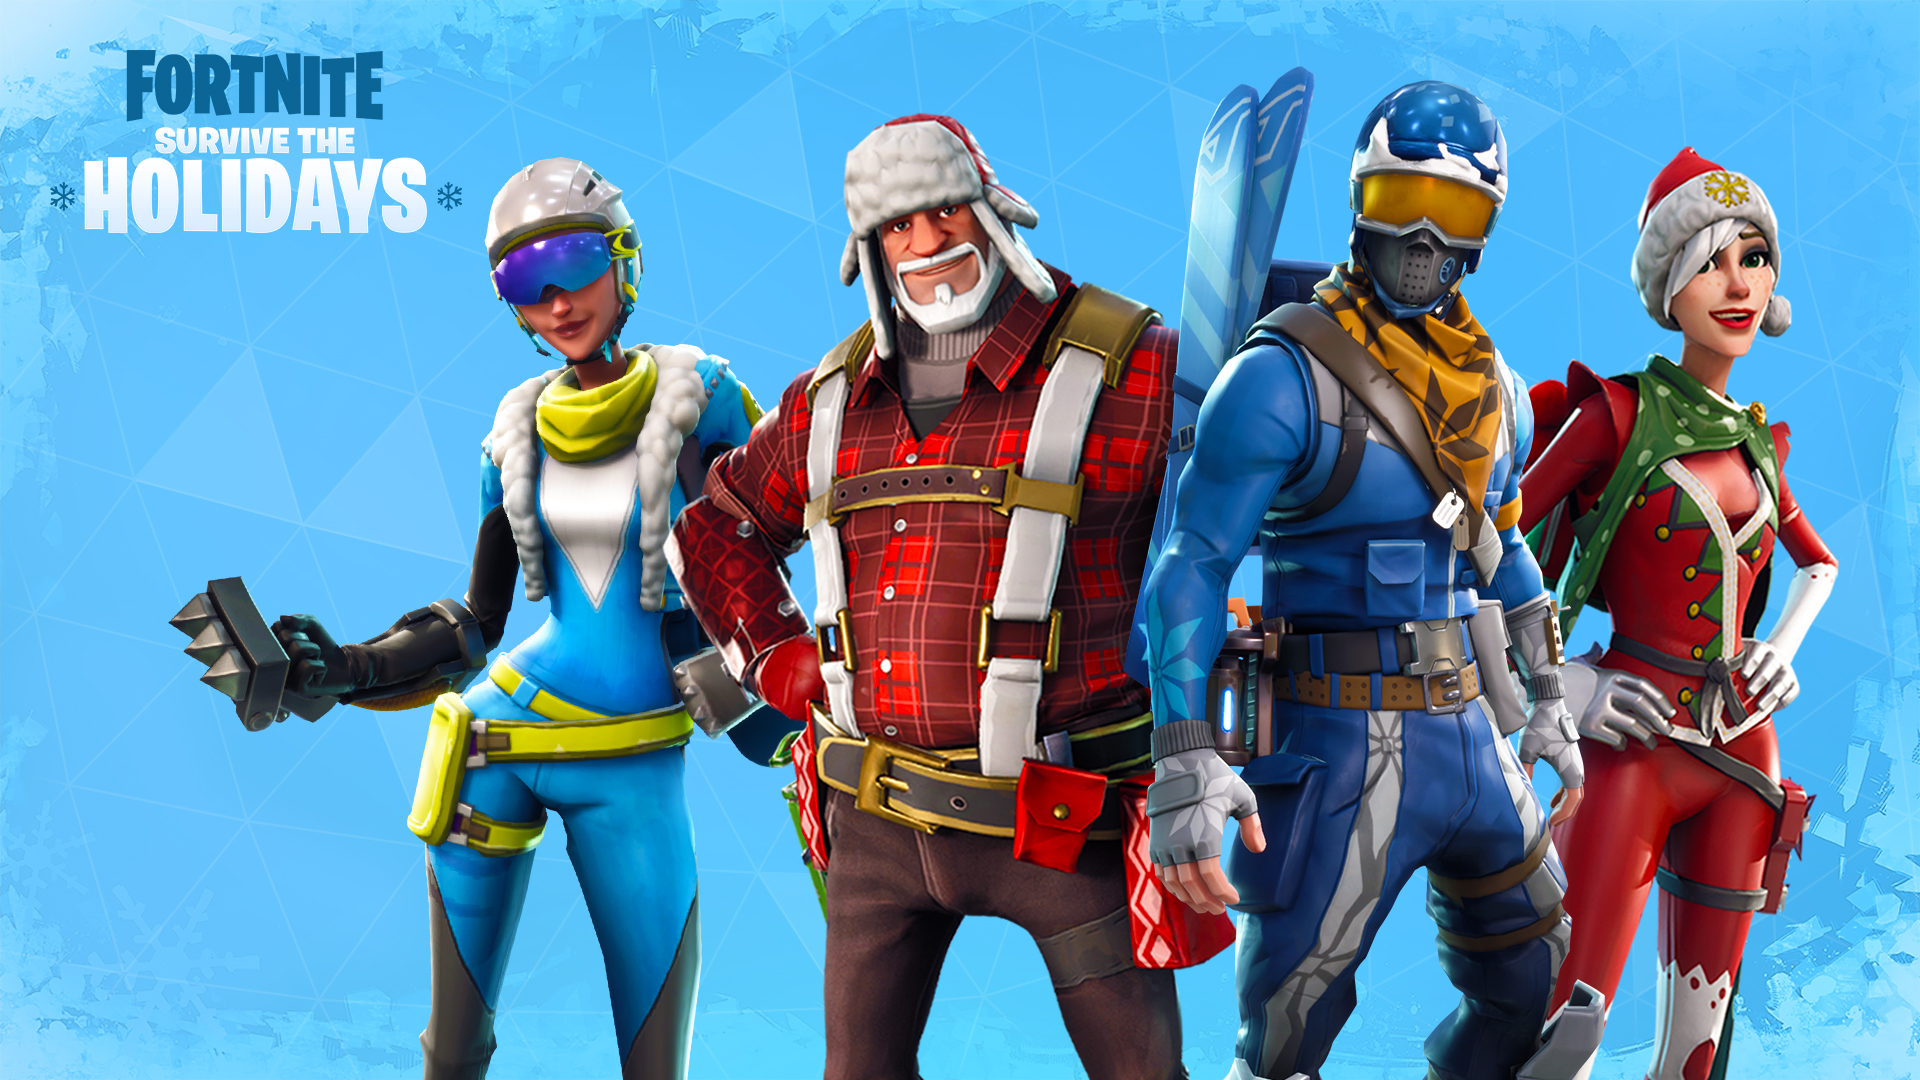 Fortnite New Leak Hints At Snow Themed Map For Season 7 Dot Esports